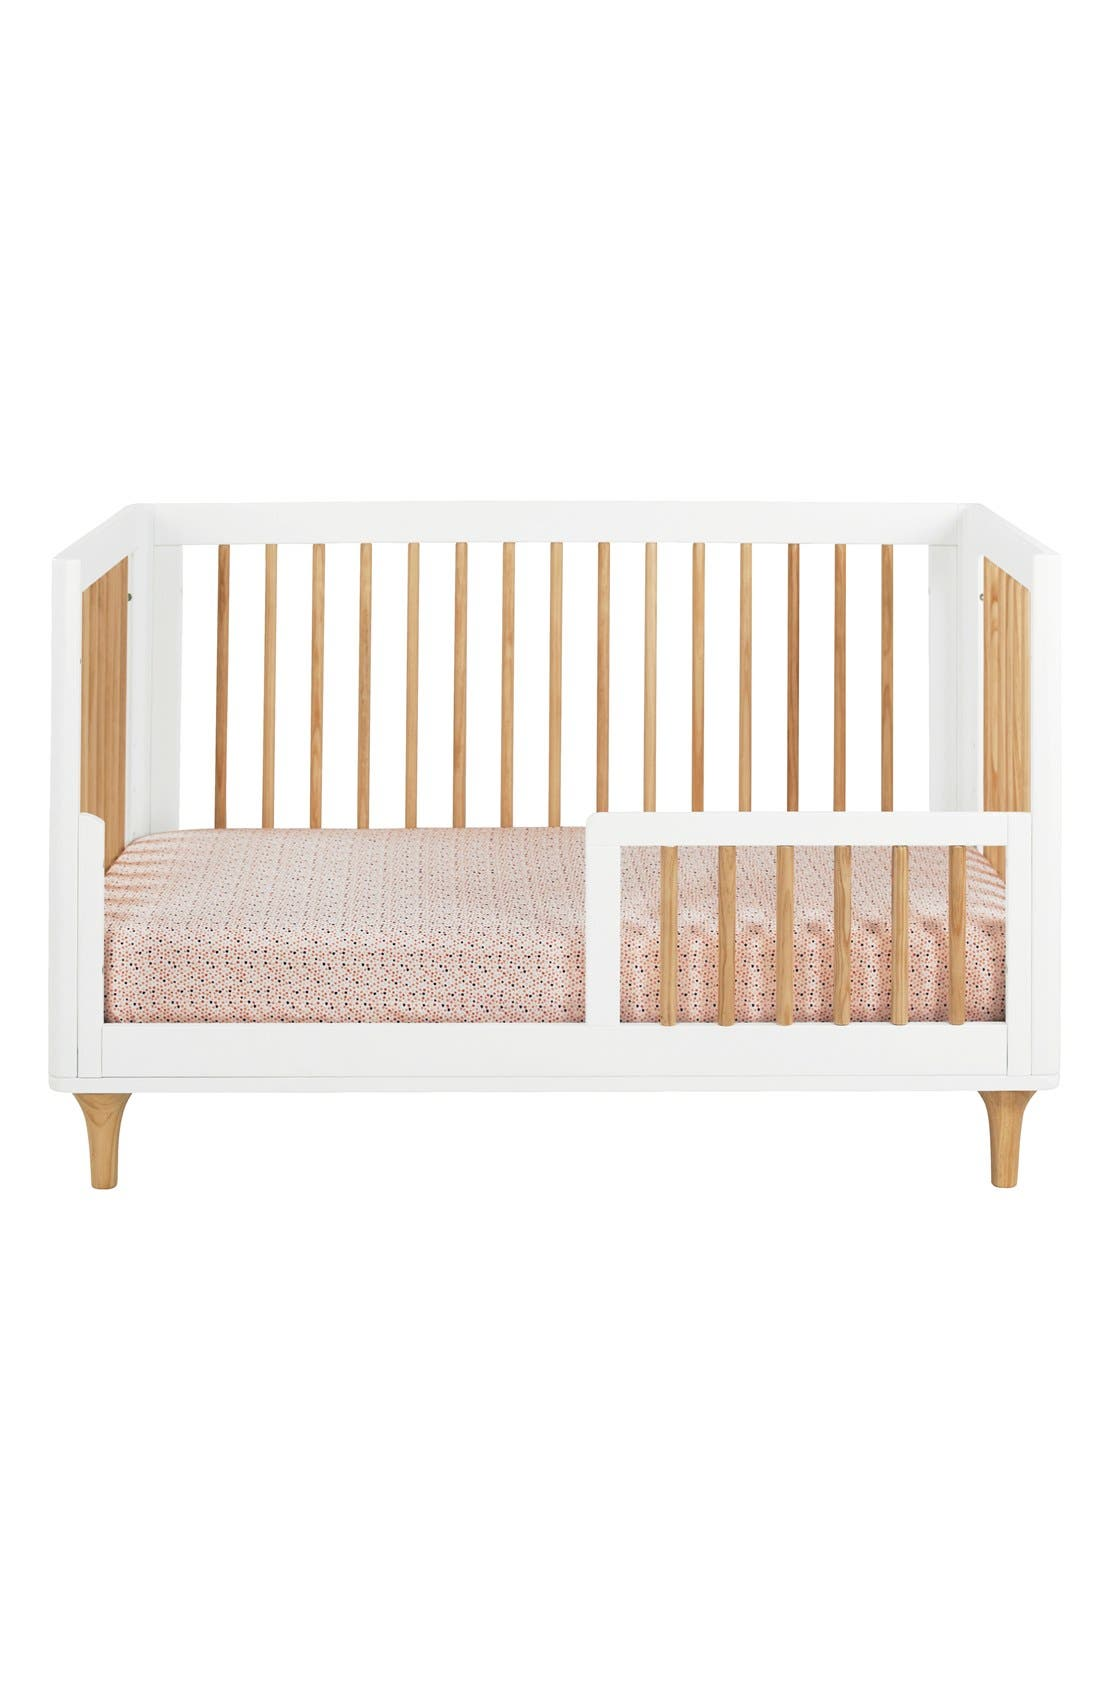 'Lolly' 3-in-1 Convertible Crib,                             Alternate thumbnail 2, color,                             250